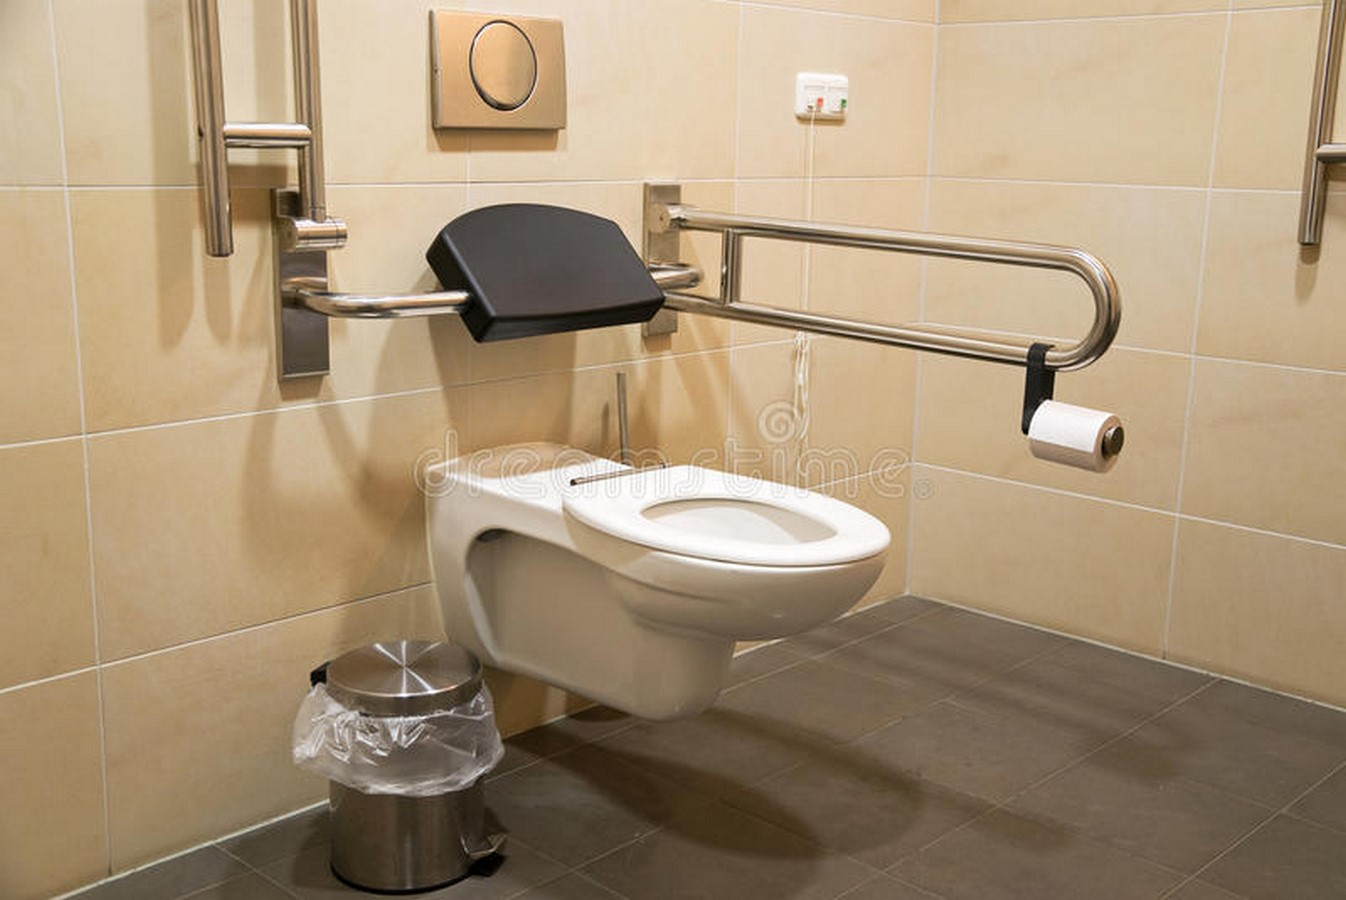 10 Things to remember when designing spaces for the handicapped - Sheet4